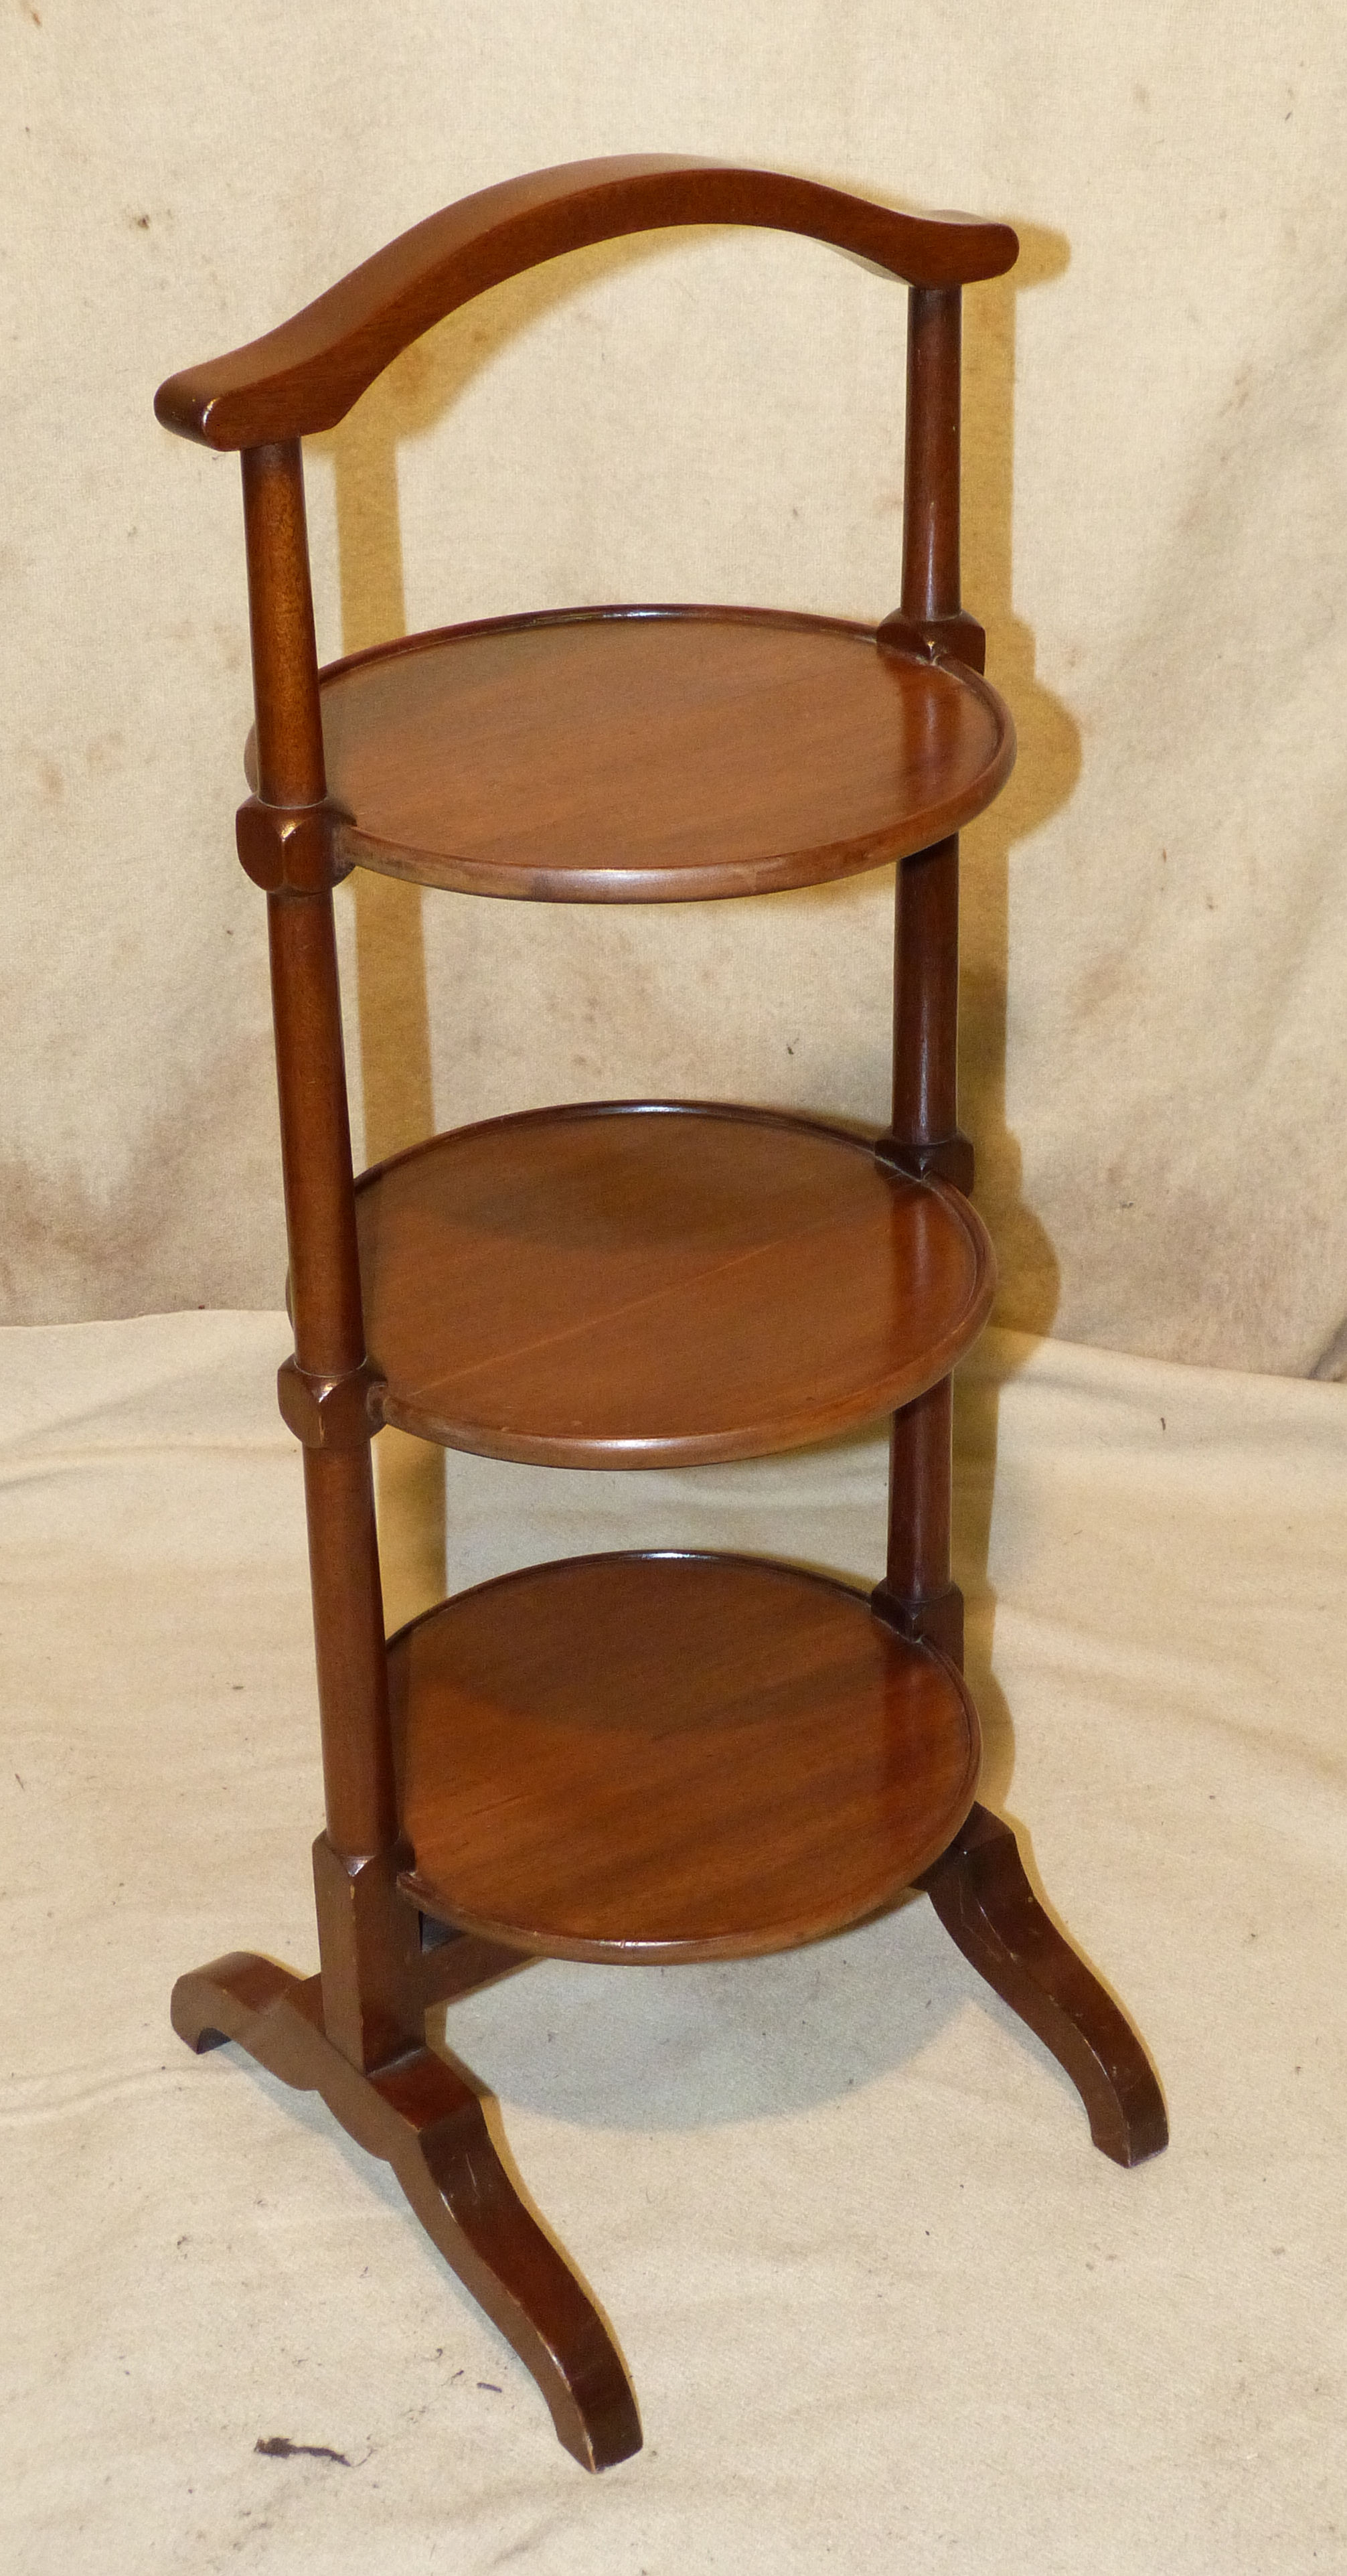 An Edwardian Mahogany 3 Tier Cake Stand having carrying handle on splayed feet